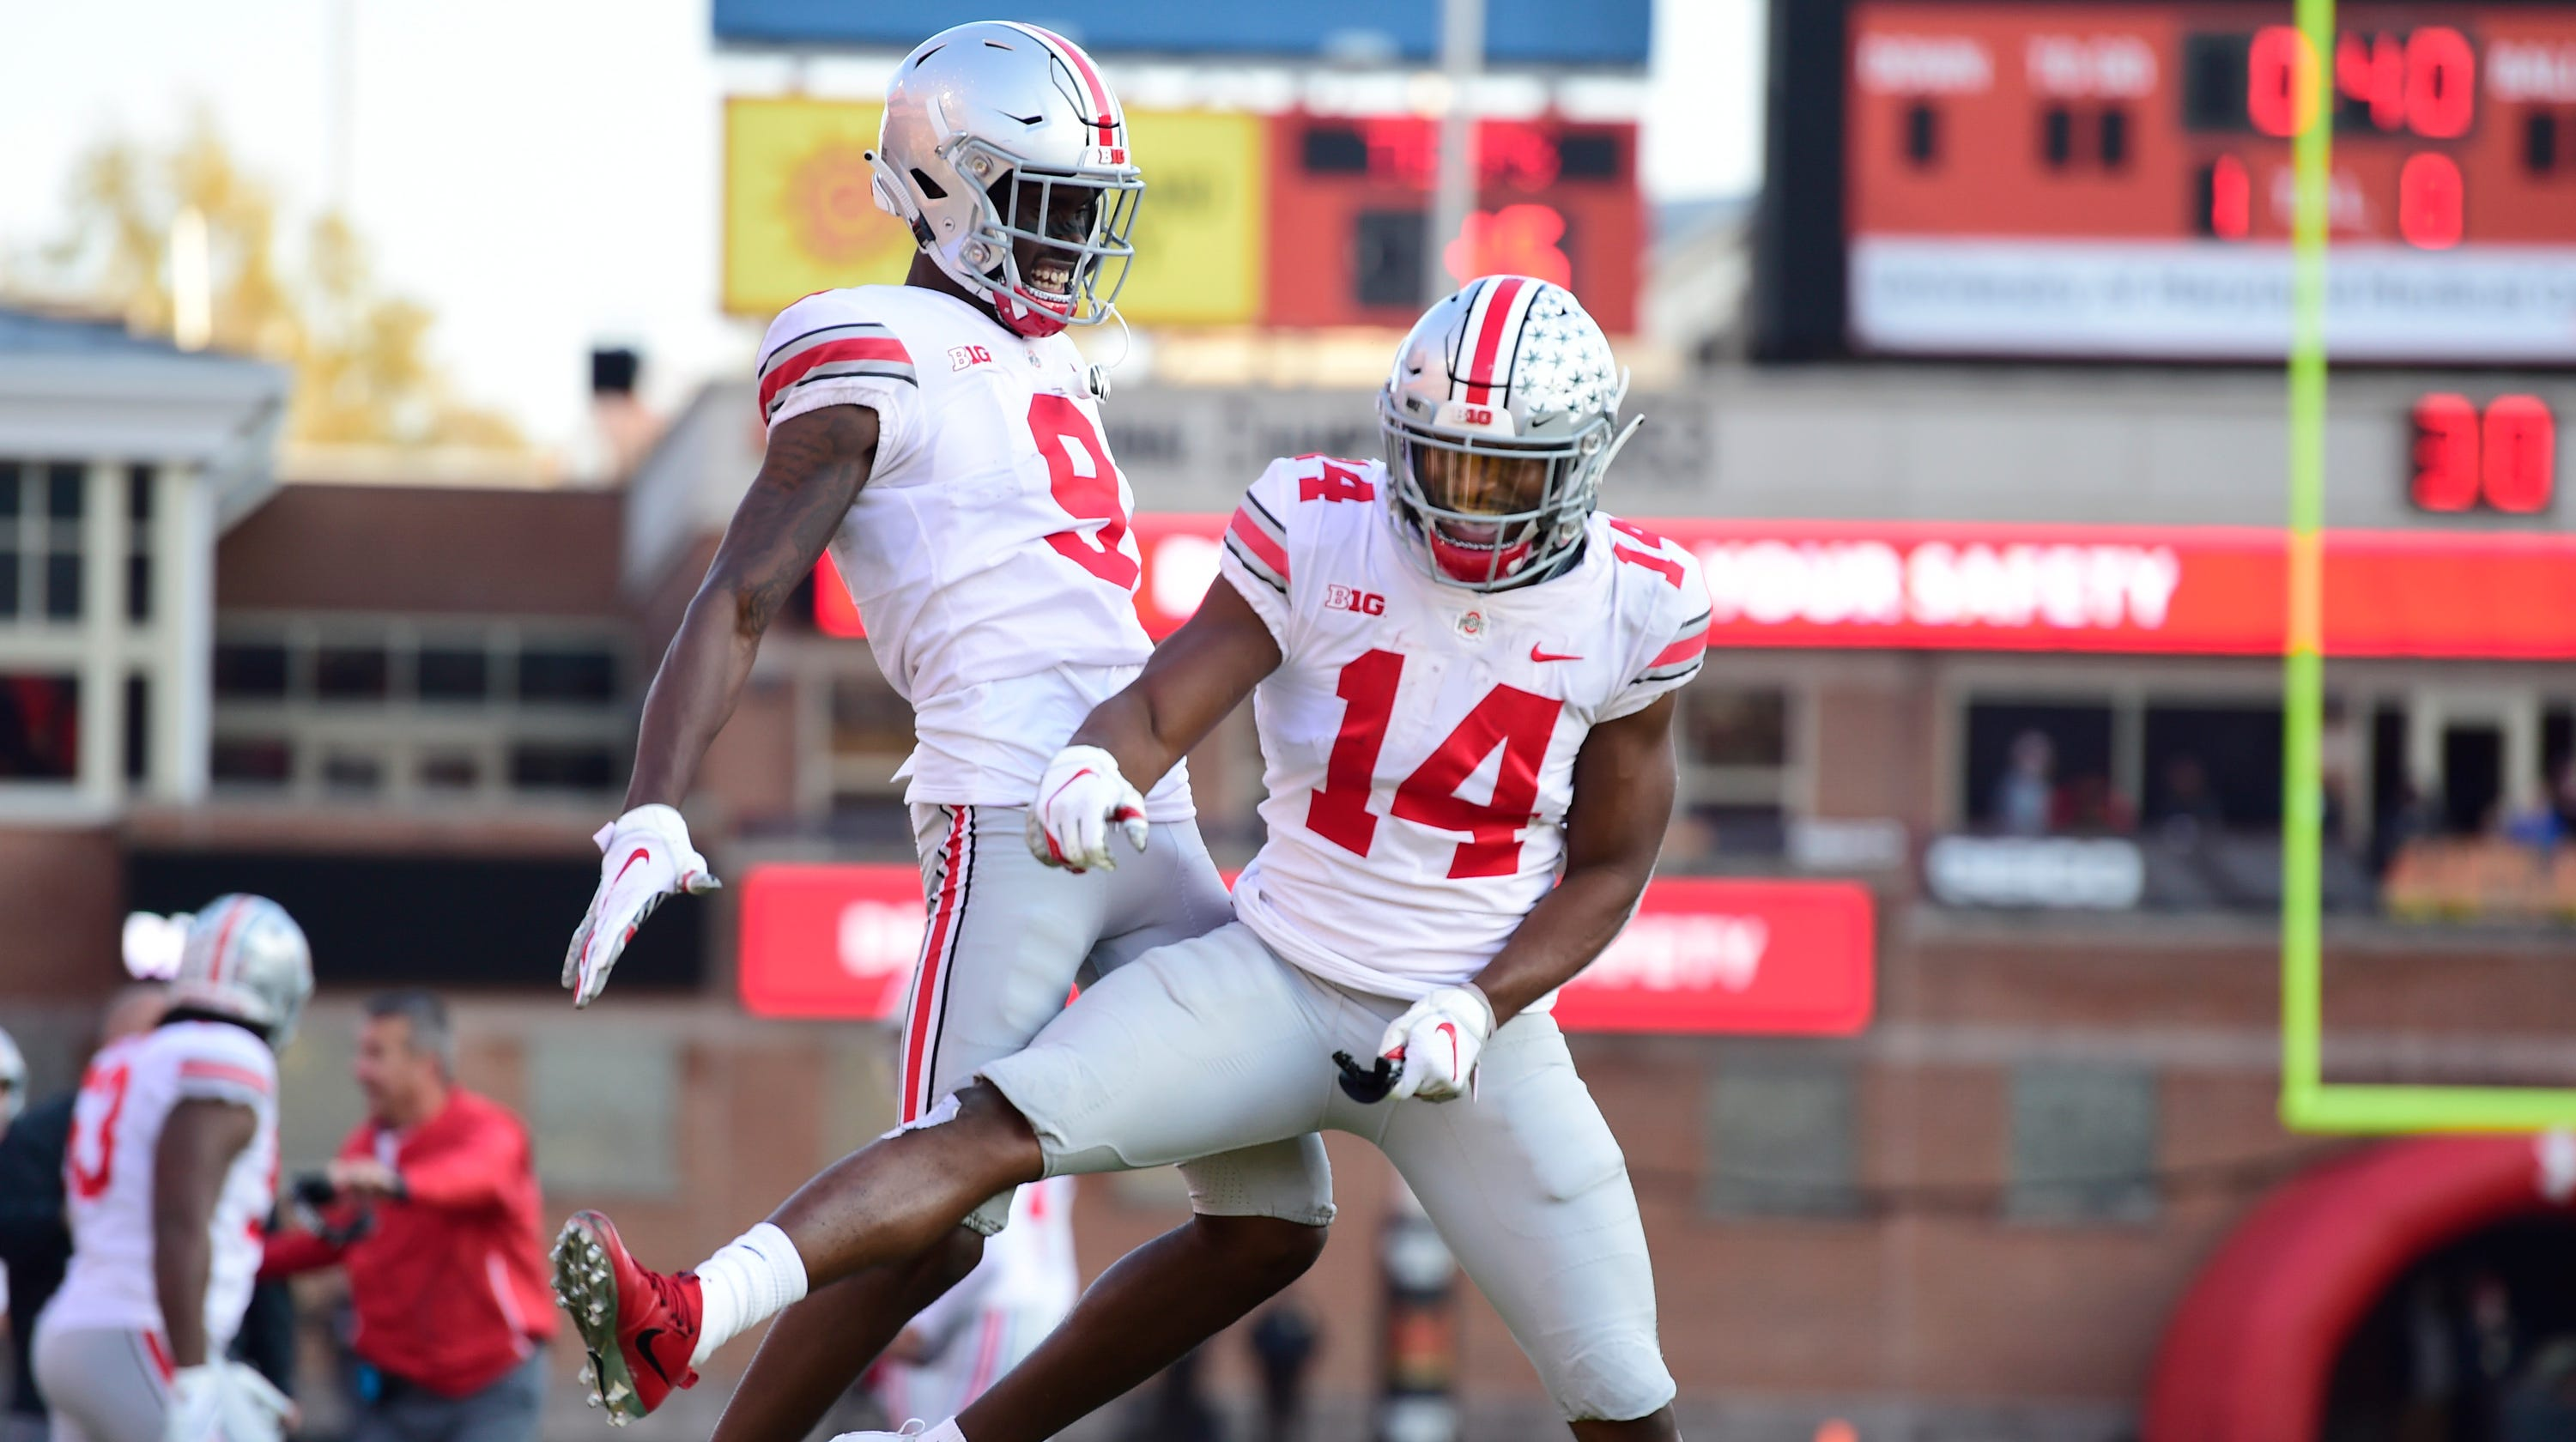 Mixed signals: OSU excites, but win no recipe for beating